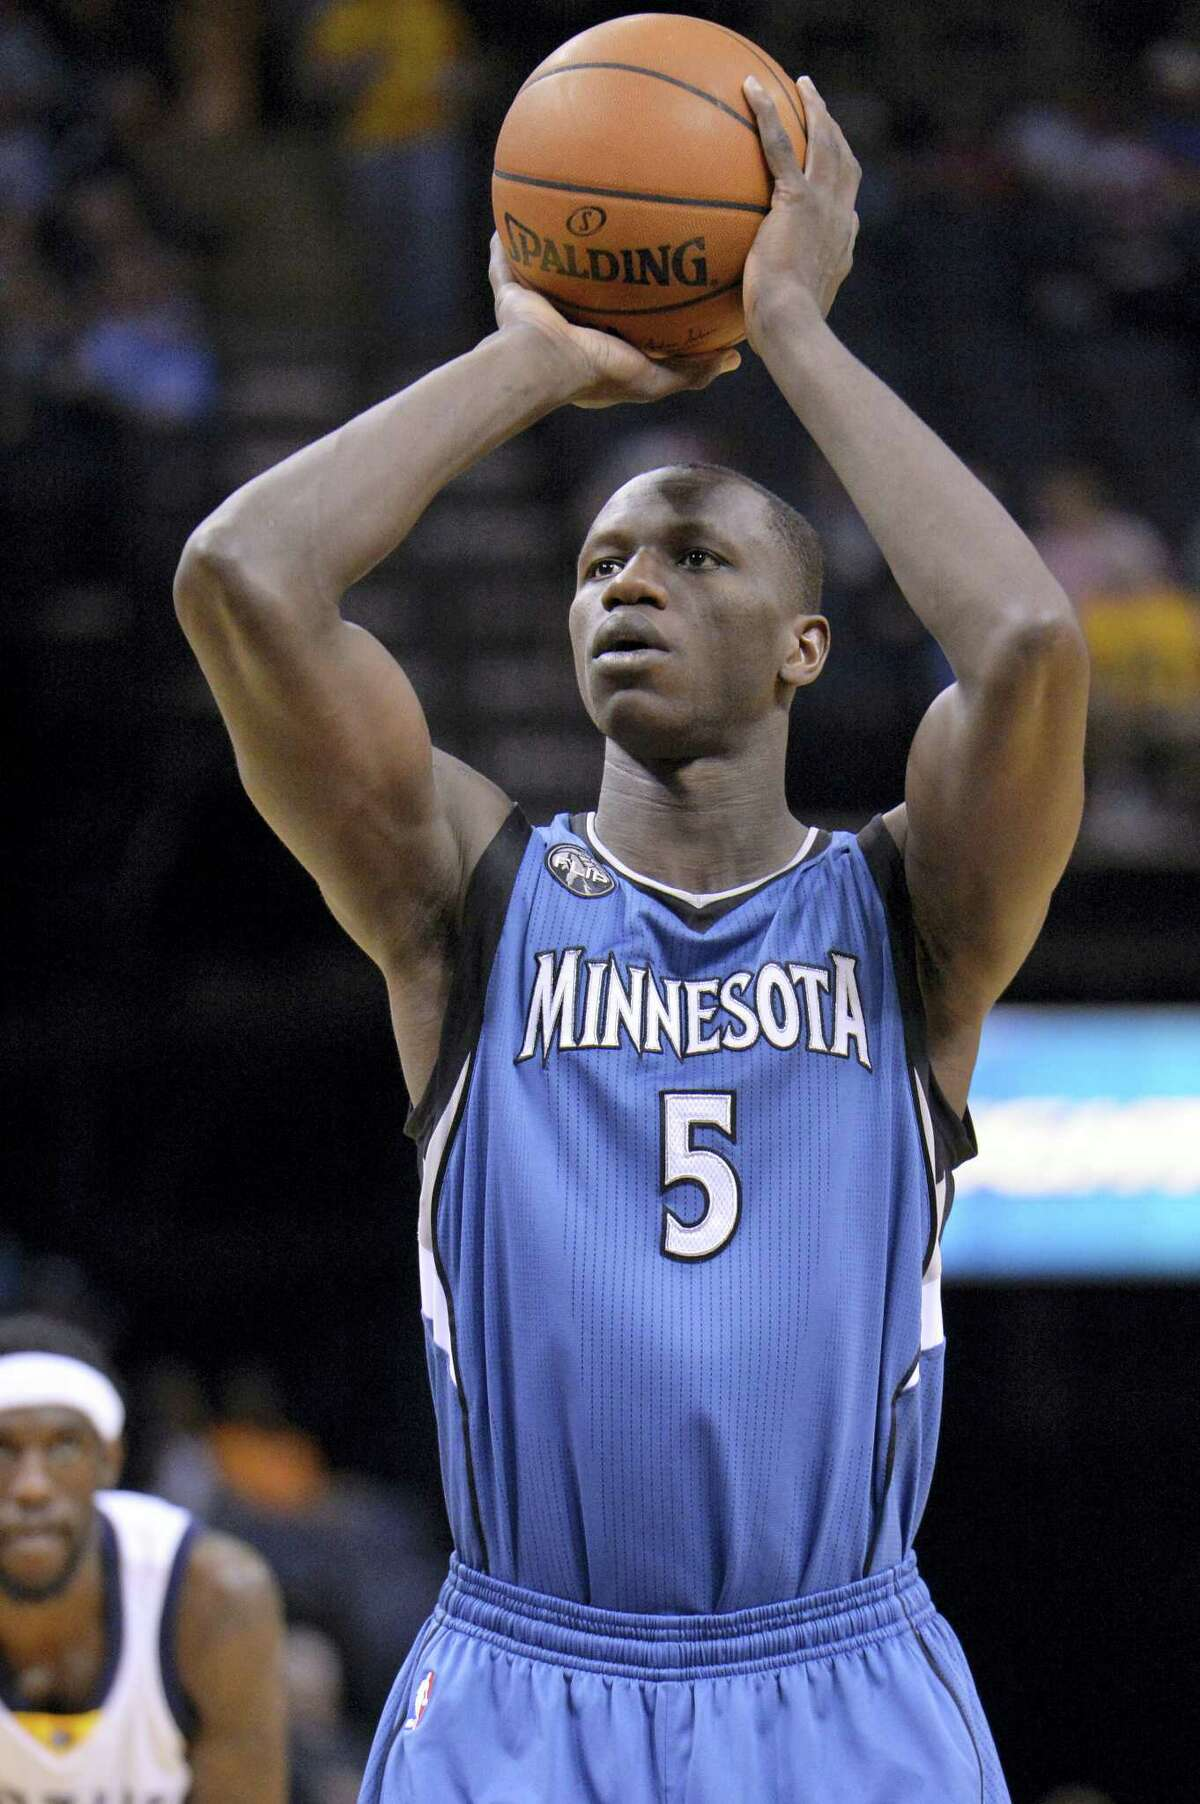 In this Wednesday, March 16, 2016 photo, Minnesota Timberwolves player Gorgui Dieng from Senegal plays in the first half of an NBA basketball game in Memphis, Tenn. The NBA will open an academy in Africa next year, its latest move to unearth talent from outside the United States and extend the league's reach into new territories.